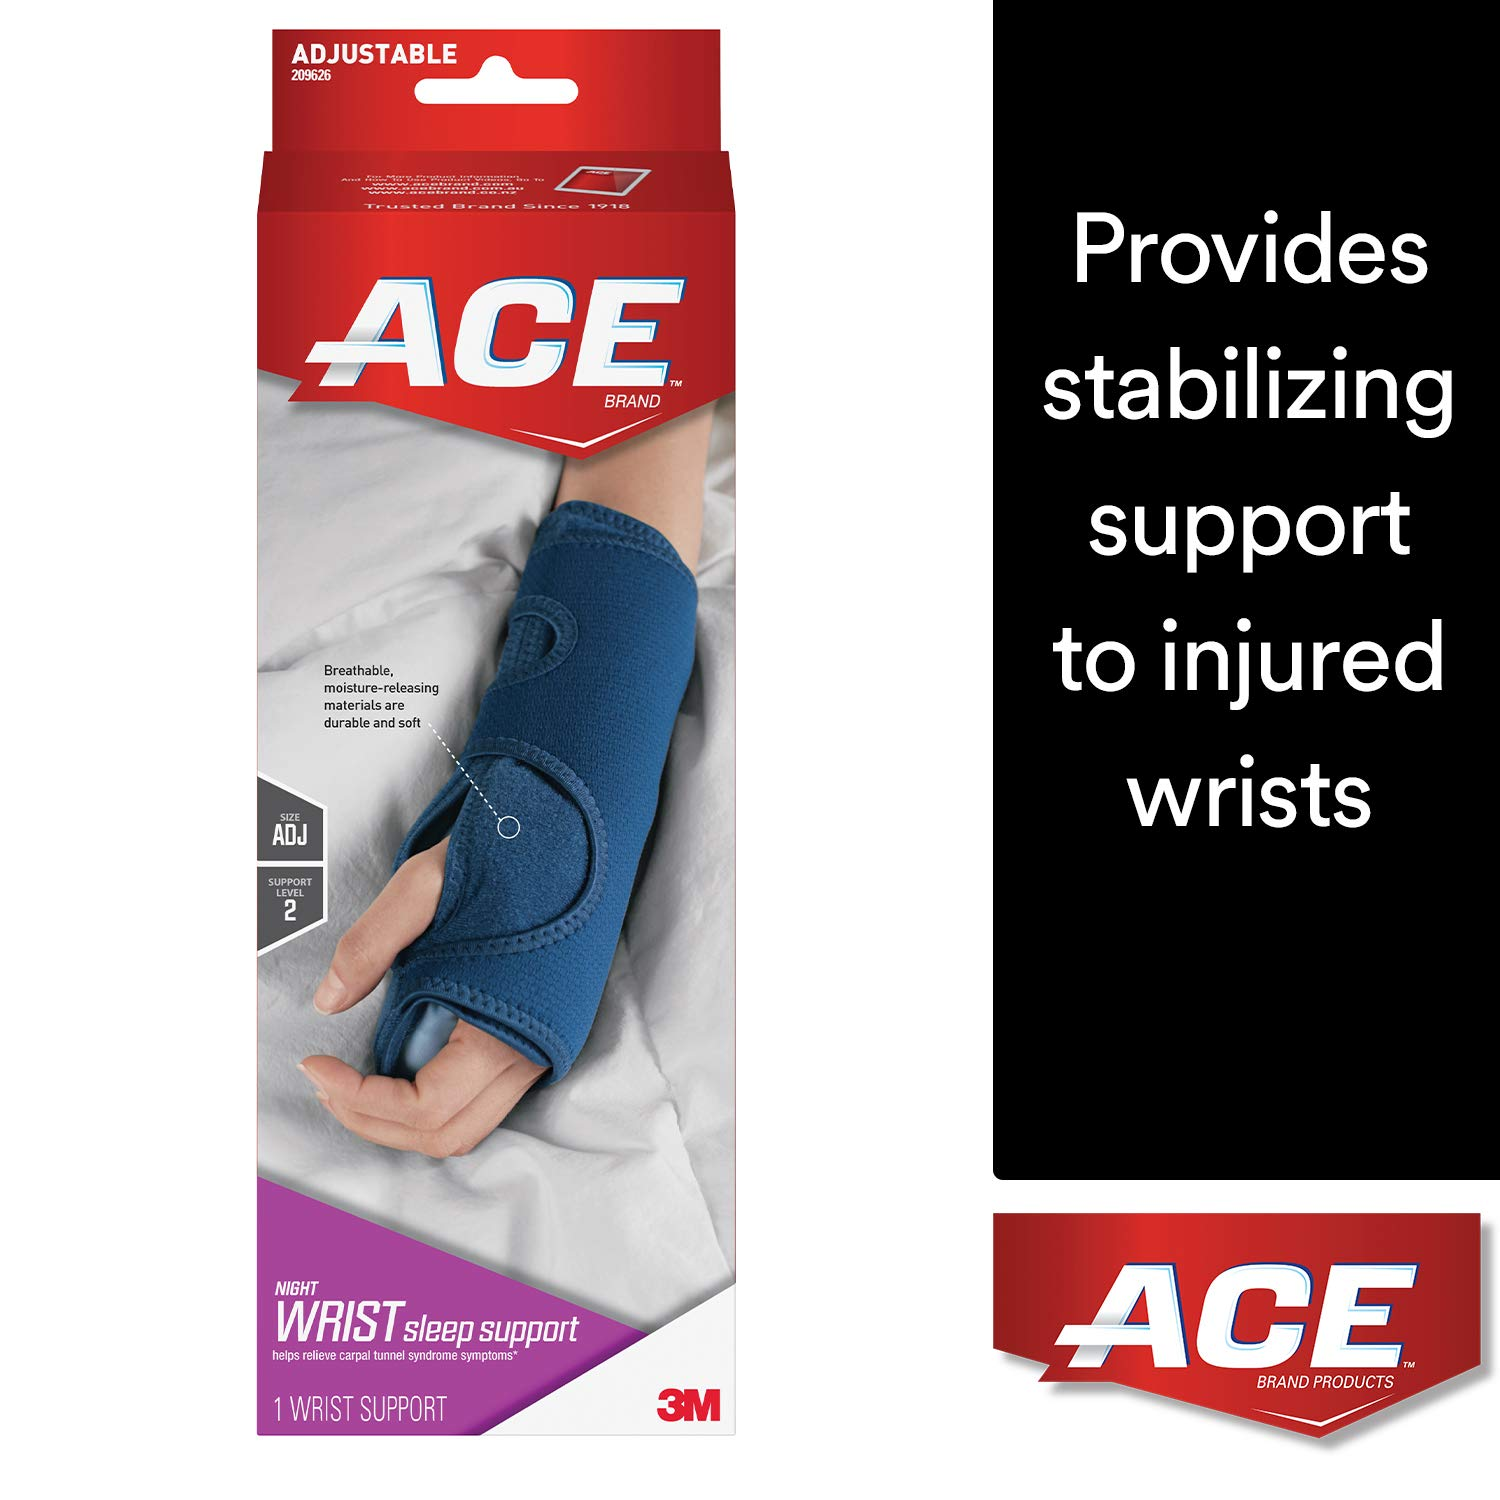 ACE Night Wrist Brace Sleep Support by ACE